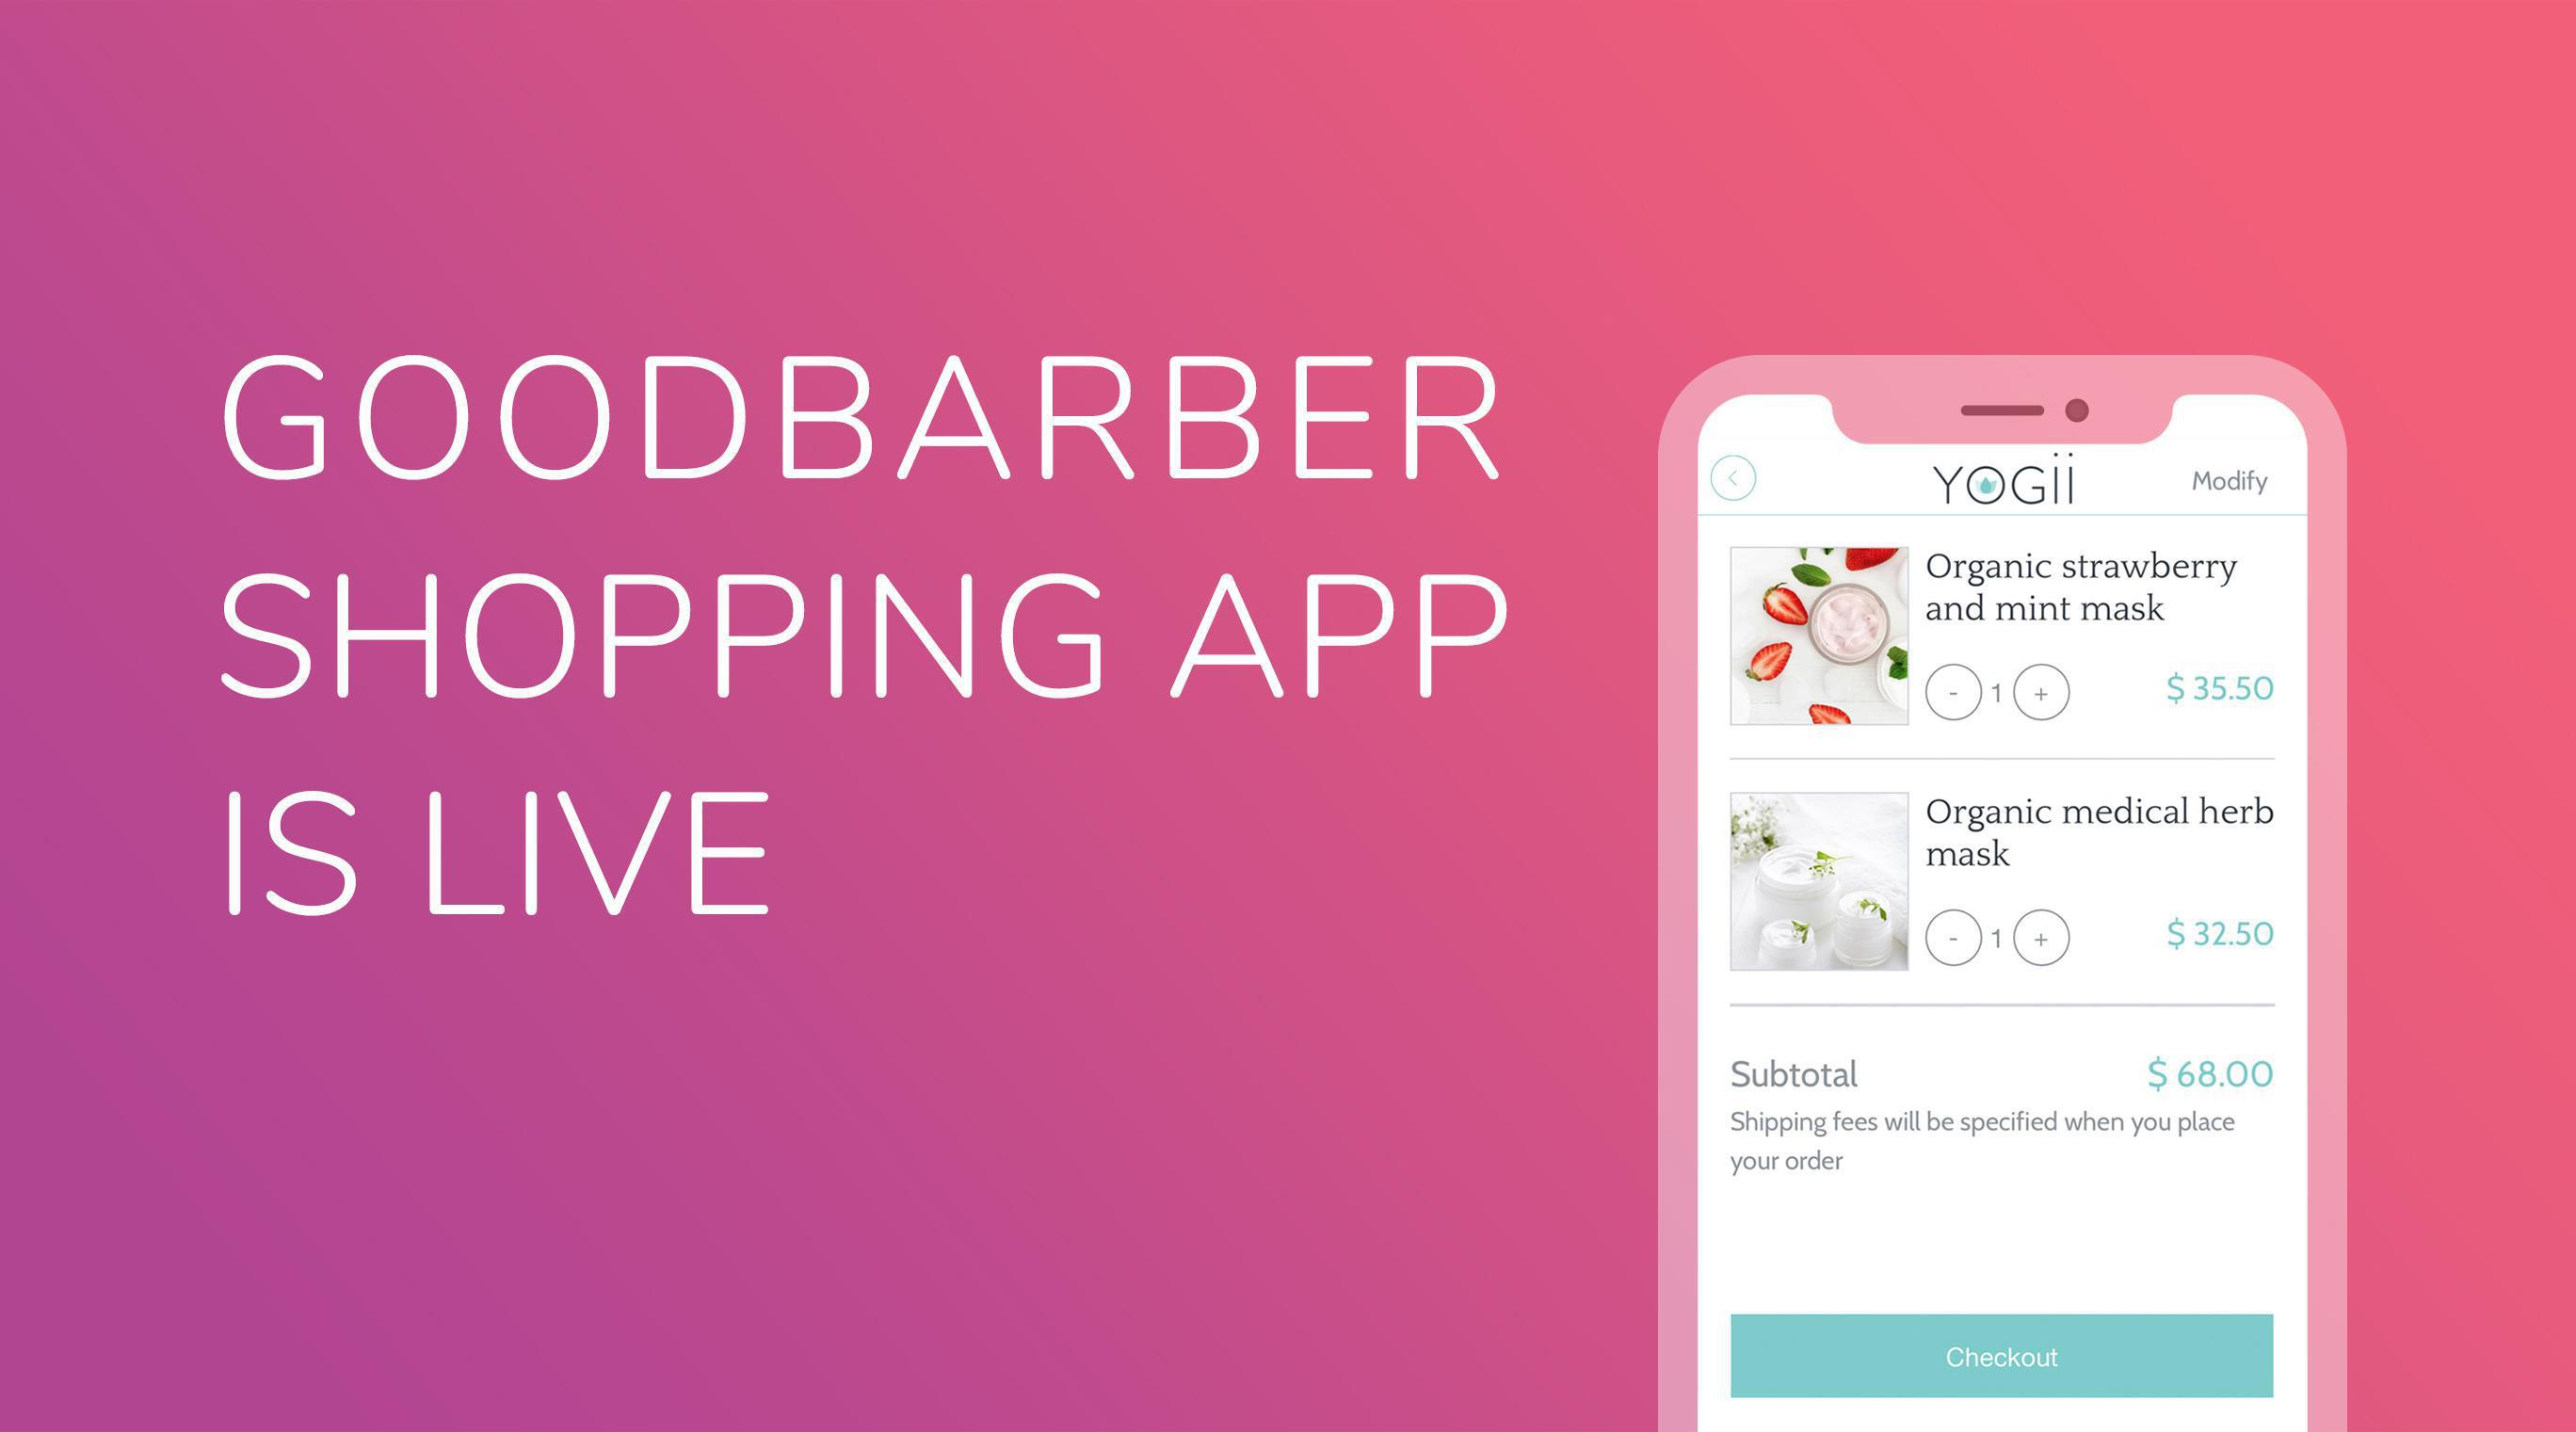 O GoodBarber Shopping App chegou!